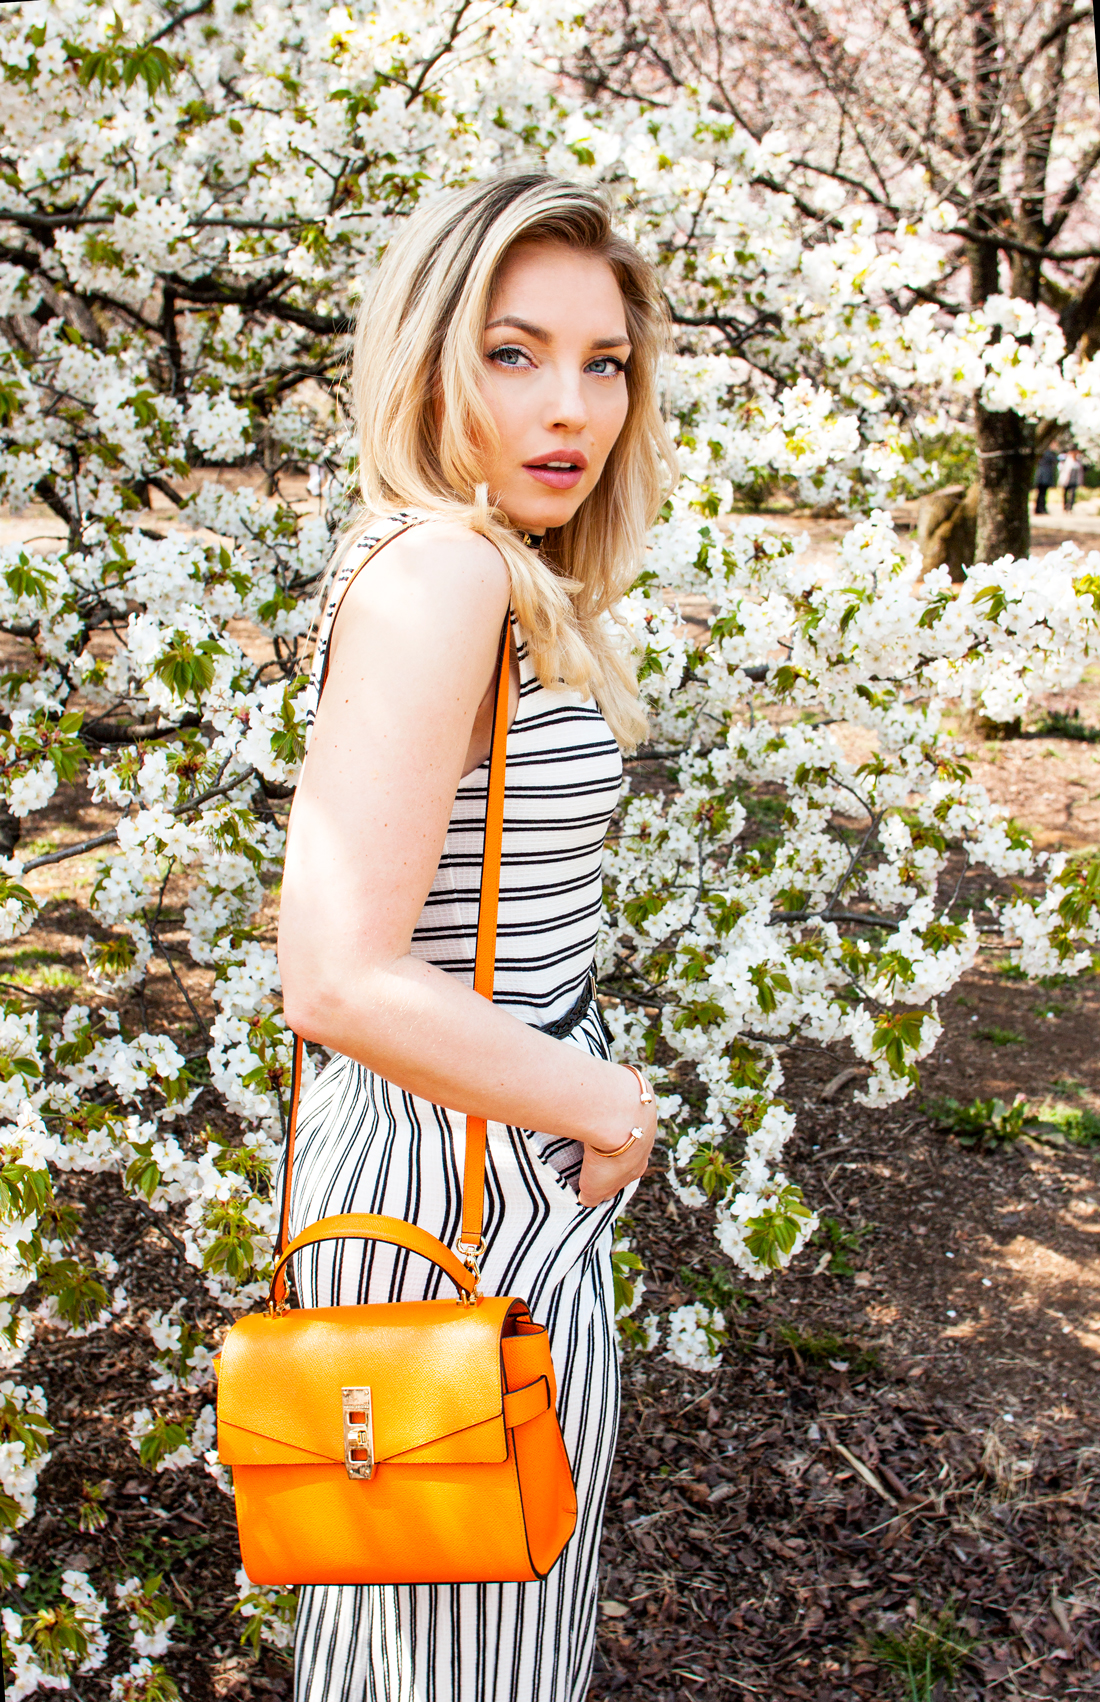 Henri Bendel spring 2016, Henri Bendel accessories, Henri Bendel international shipping, Henri Bendel bags, Henri Bendel olivia culpo bag, Henri Bendel bracelet, Henri Bendel orange bag, bershka jumpsuit, cherryblossomstreet blog, sakura season, cherry blossoms japan, cherry blossoms tokyo, cherry blossoms shinjuku park, reward style blogger